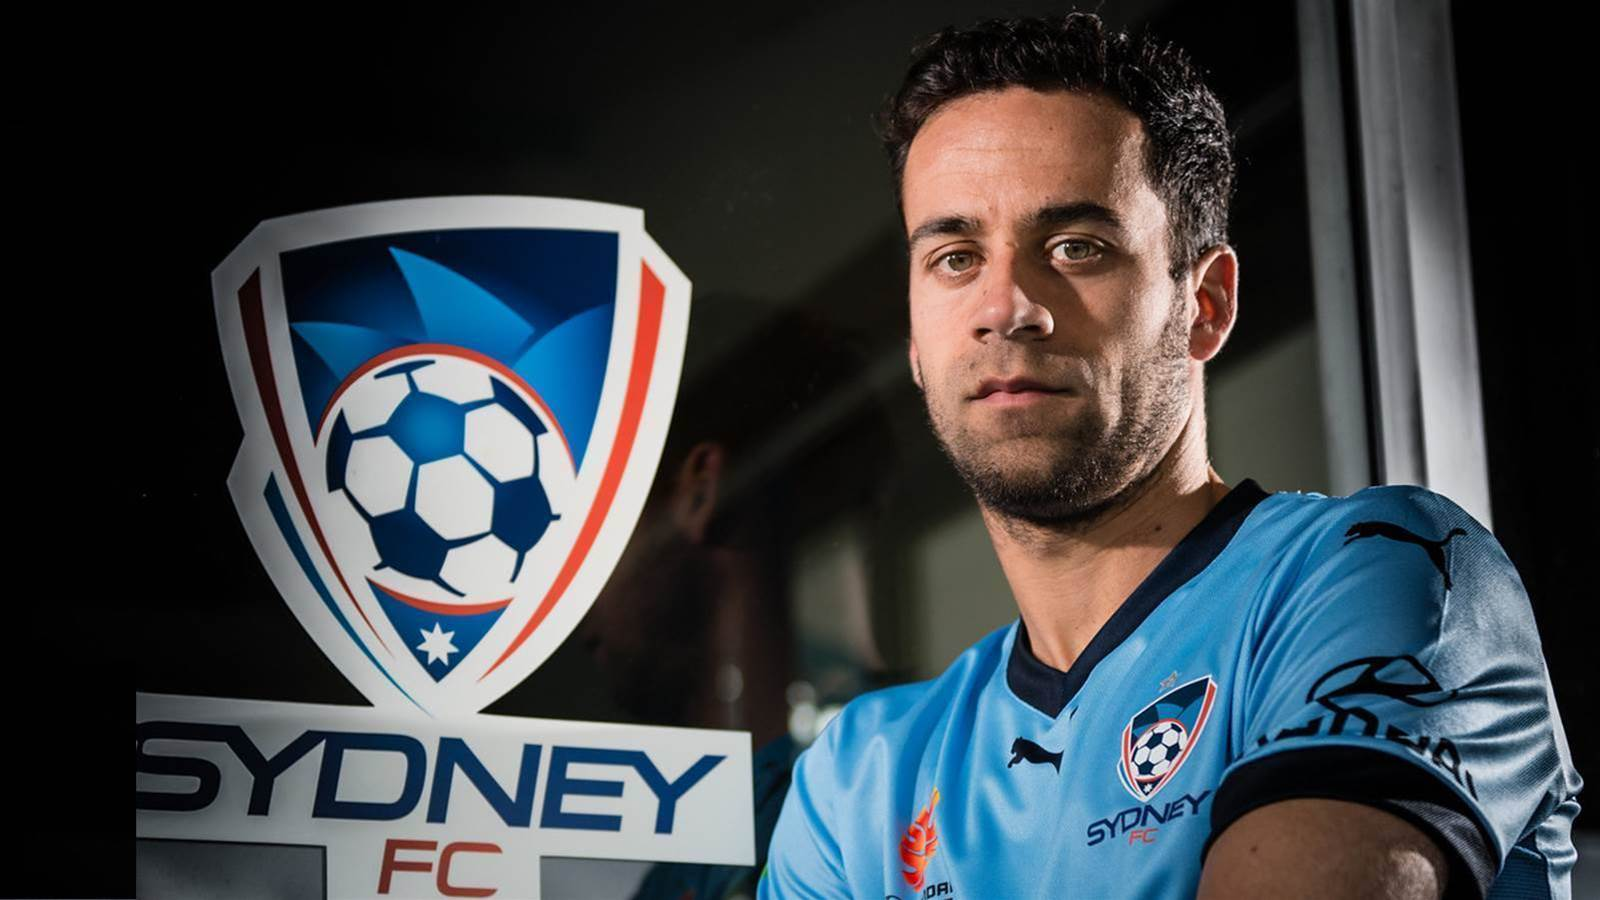 In pics: Brosque - the Sydney years